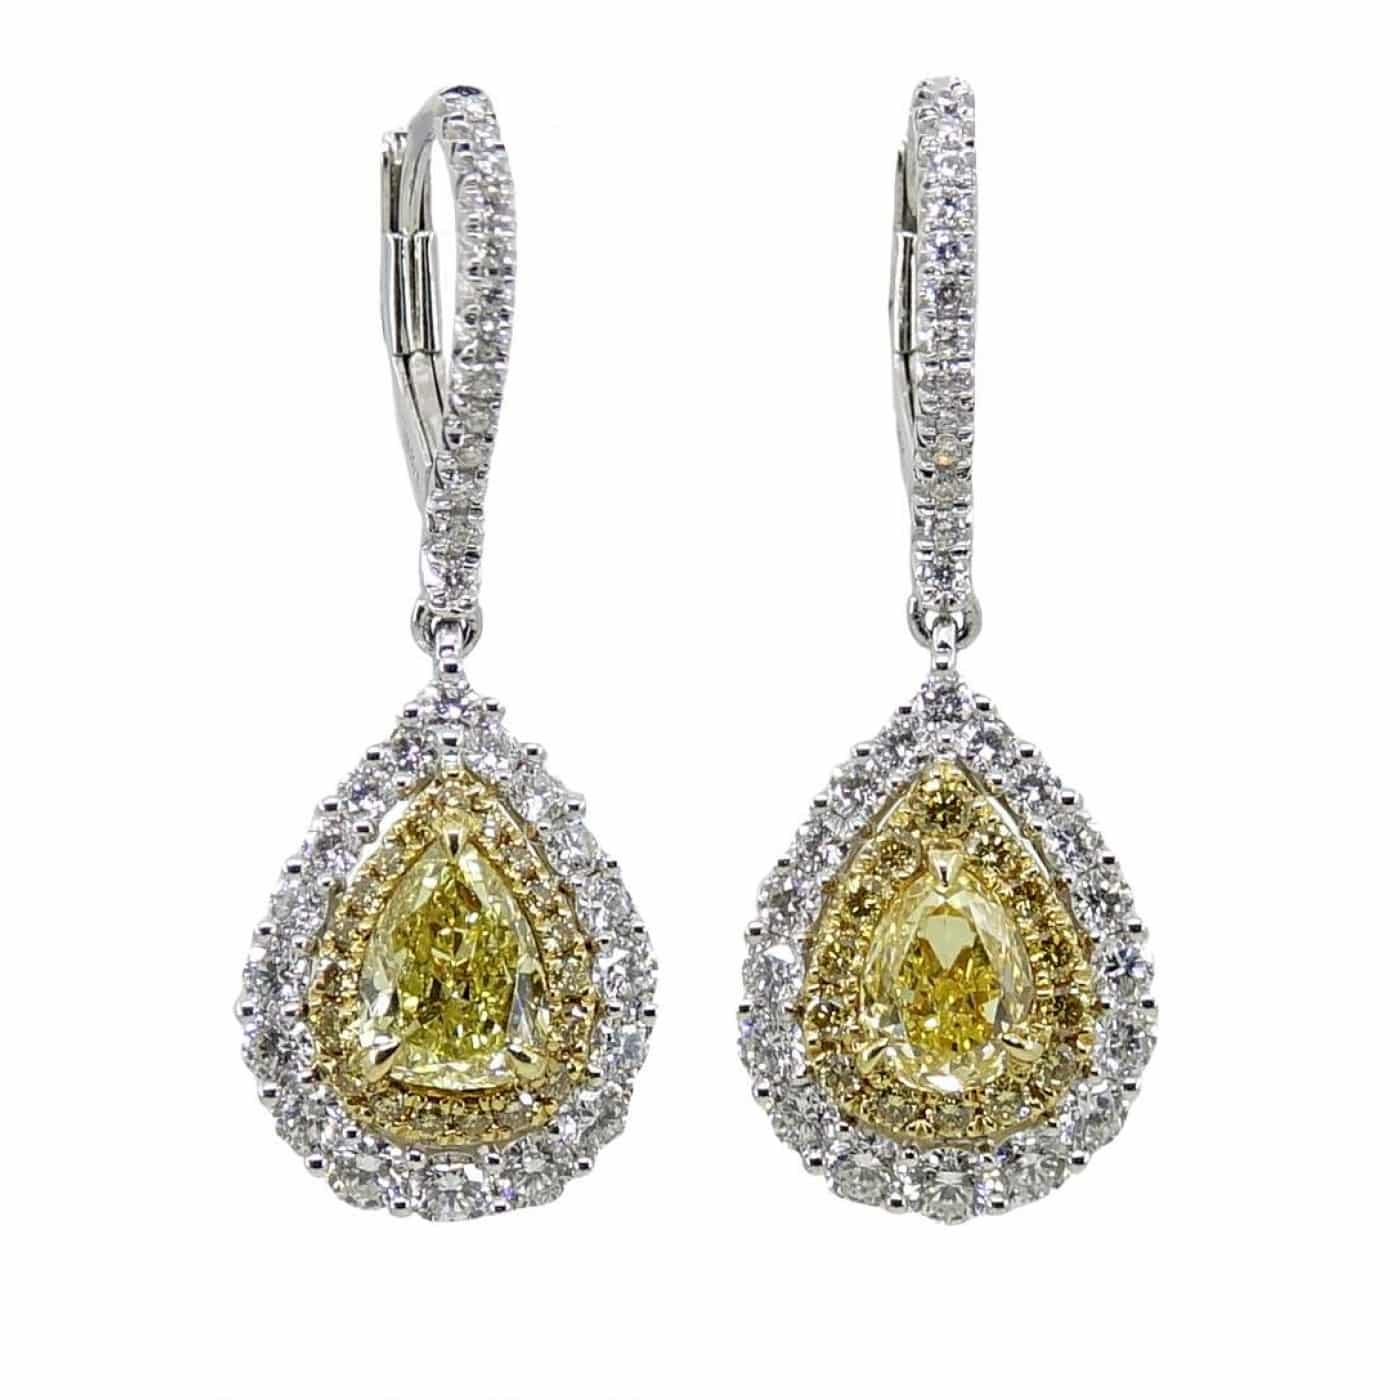 White Gold Earrings With Yellow and White Diamonds